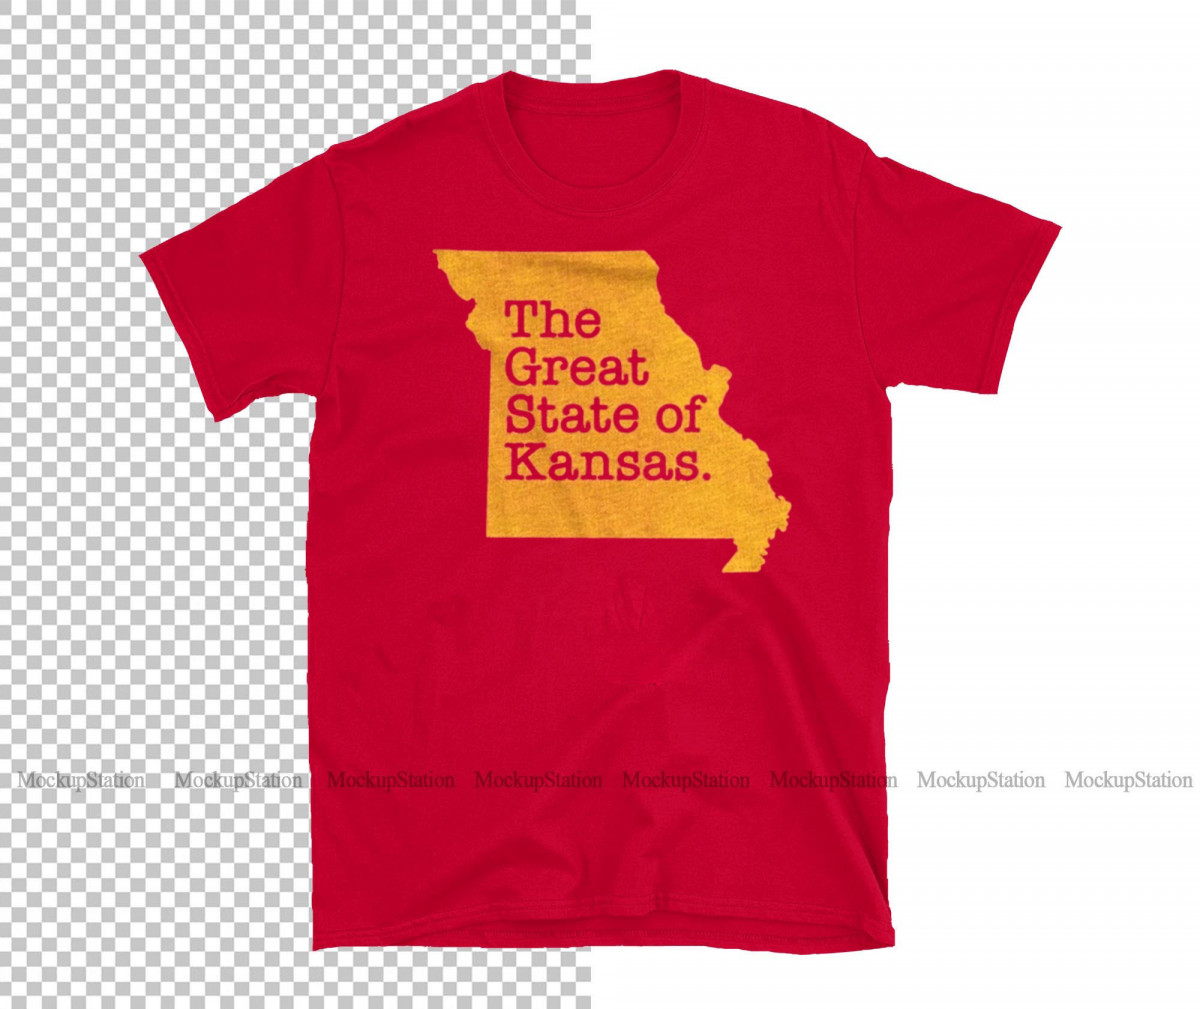 The Great State Of Kansas City Chiefs Super Bowl LIV Shirt